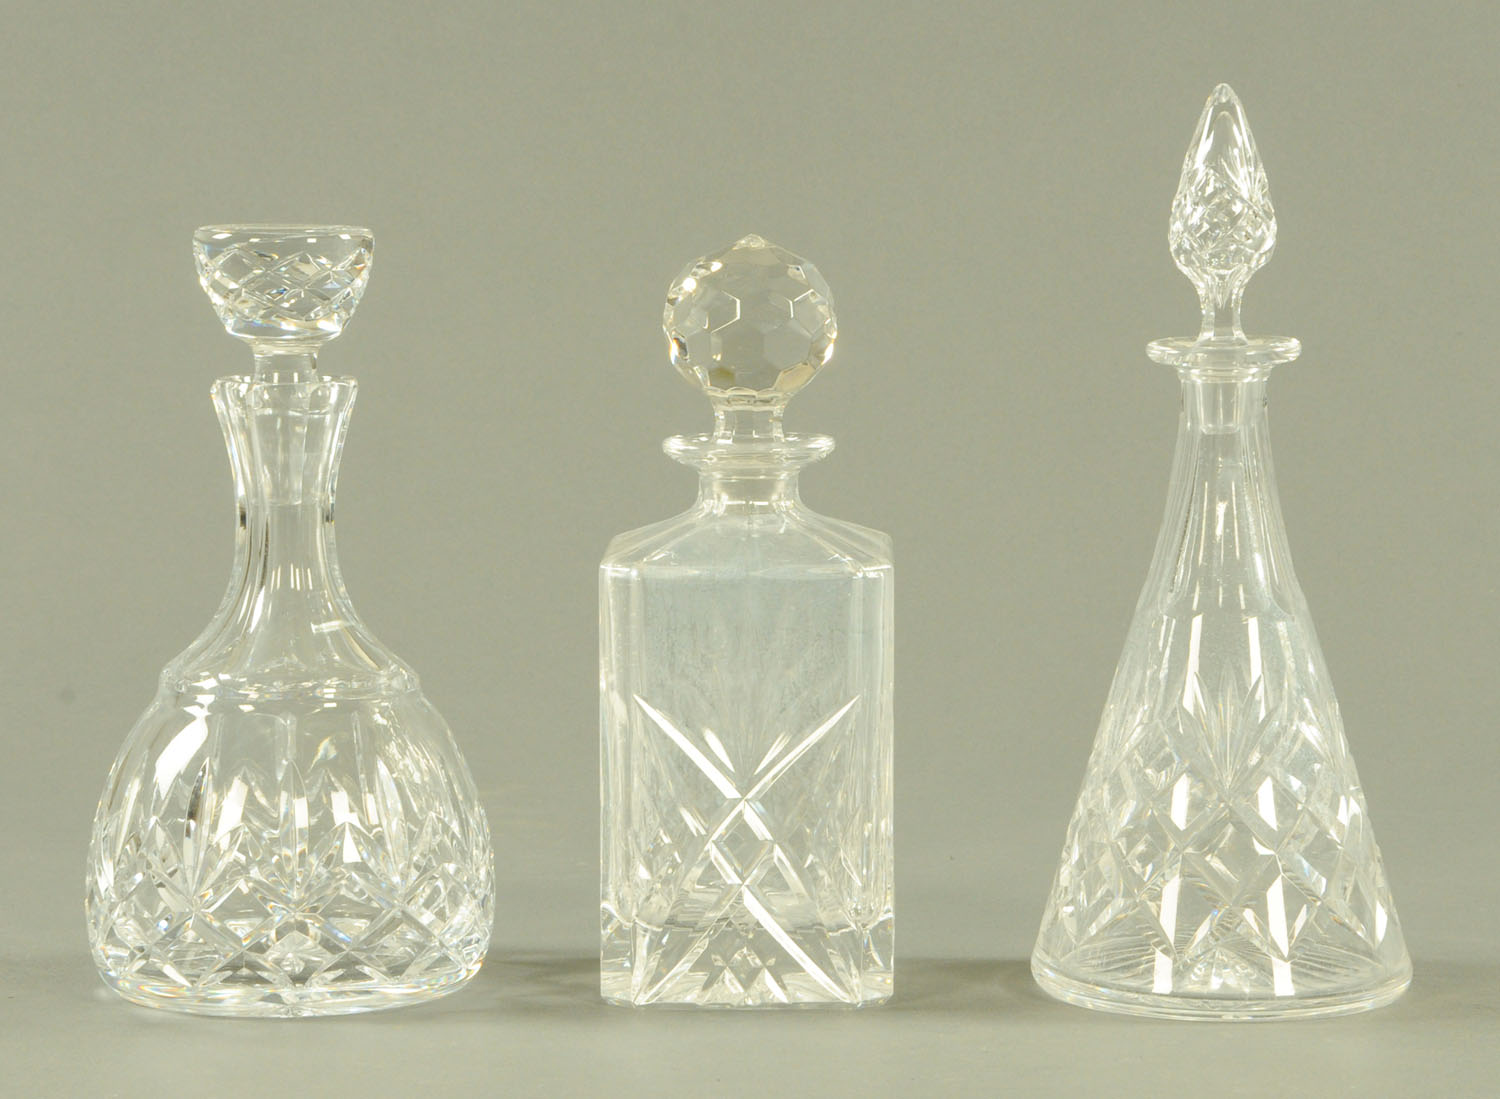 Lot 60 - Three cut glass decanters, each with stopper. Tallest 30 cm.